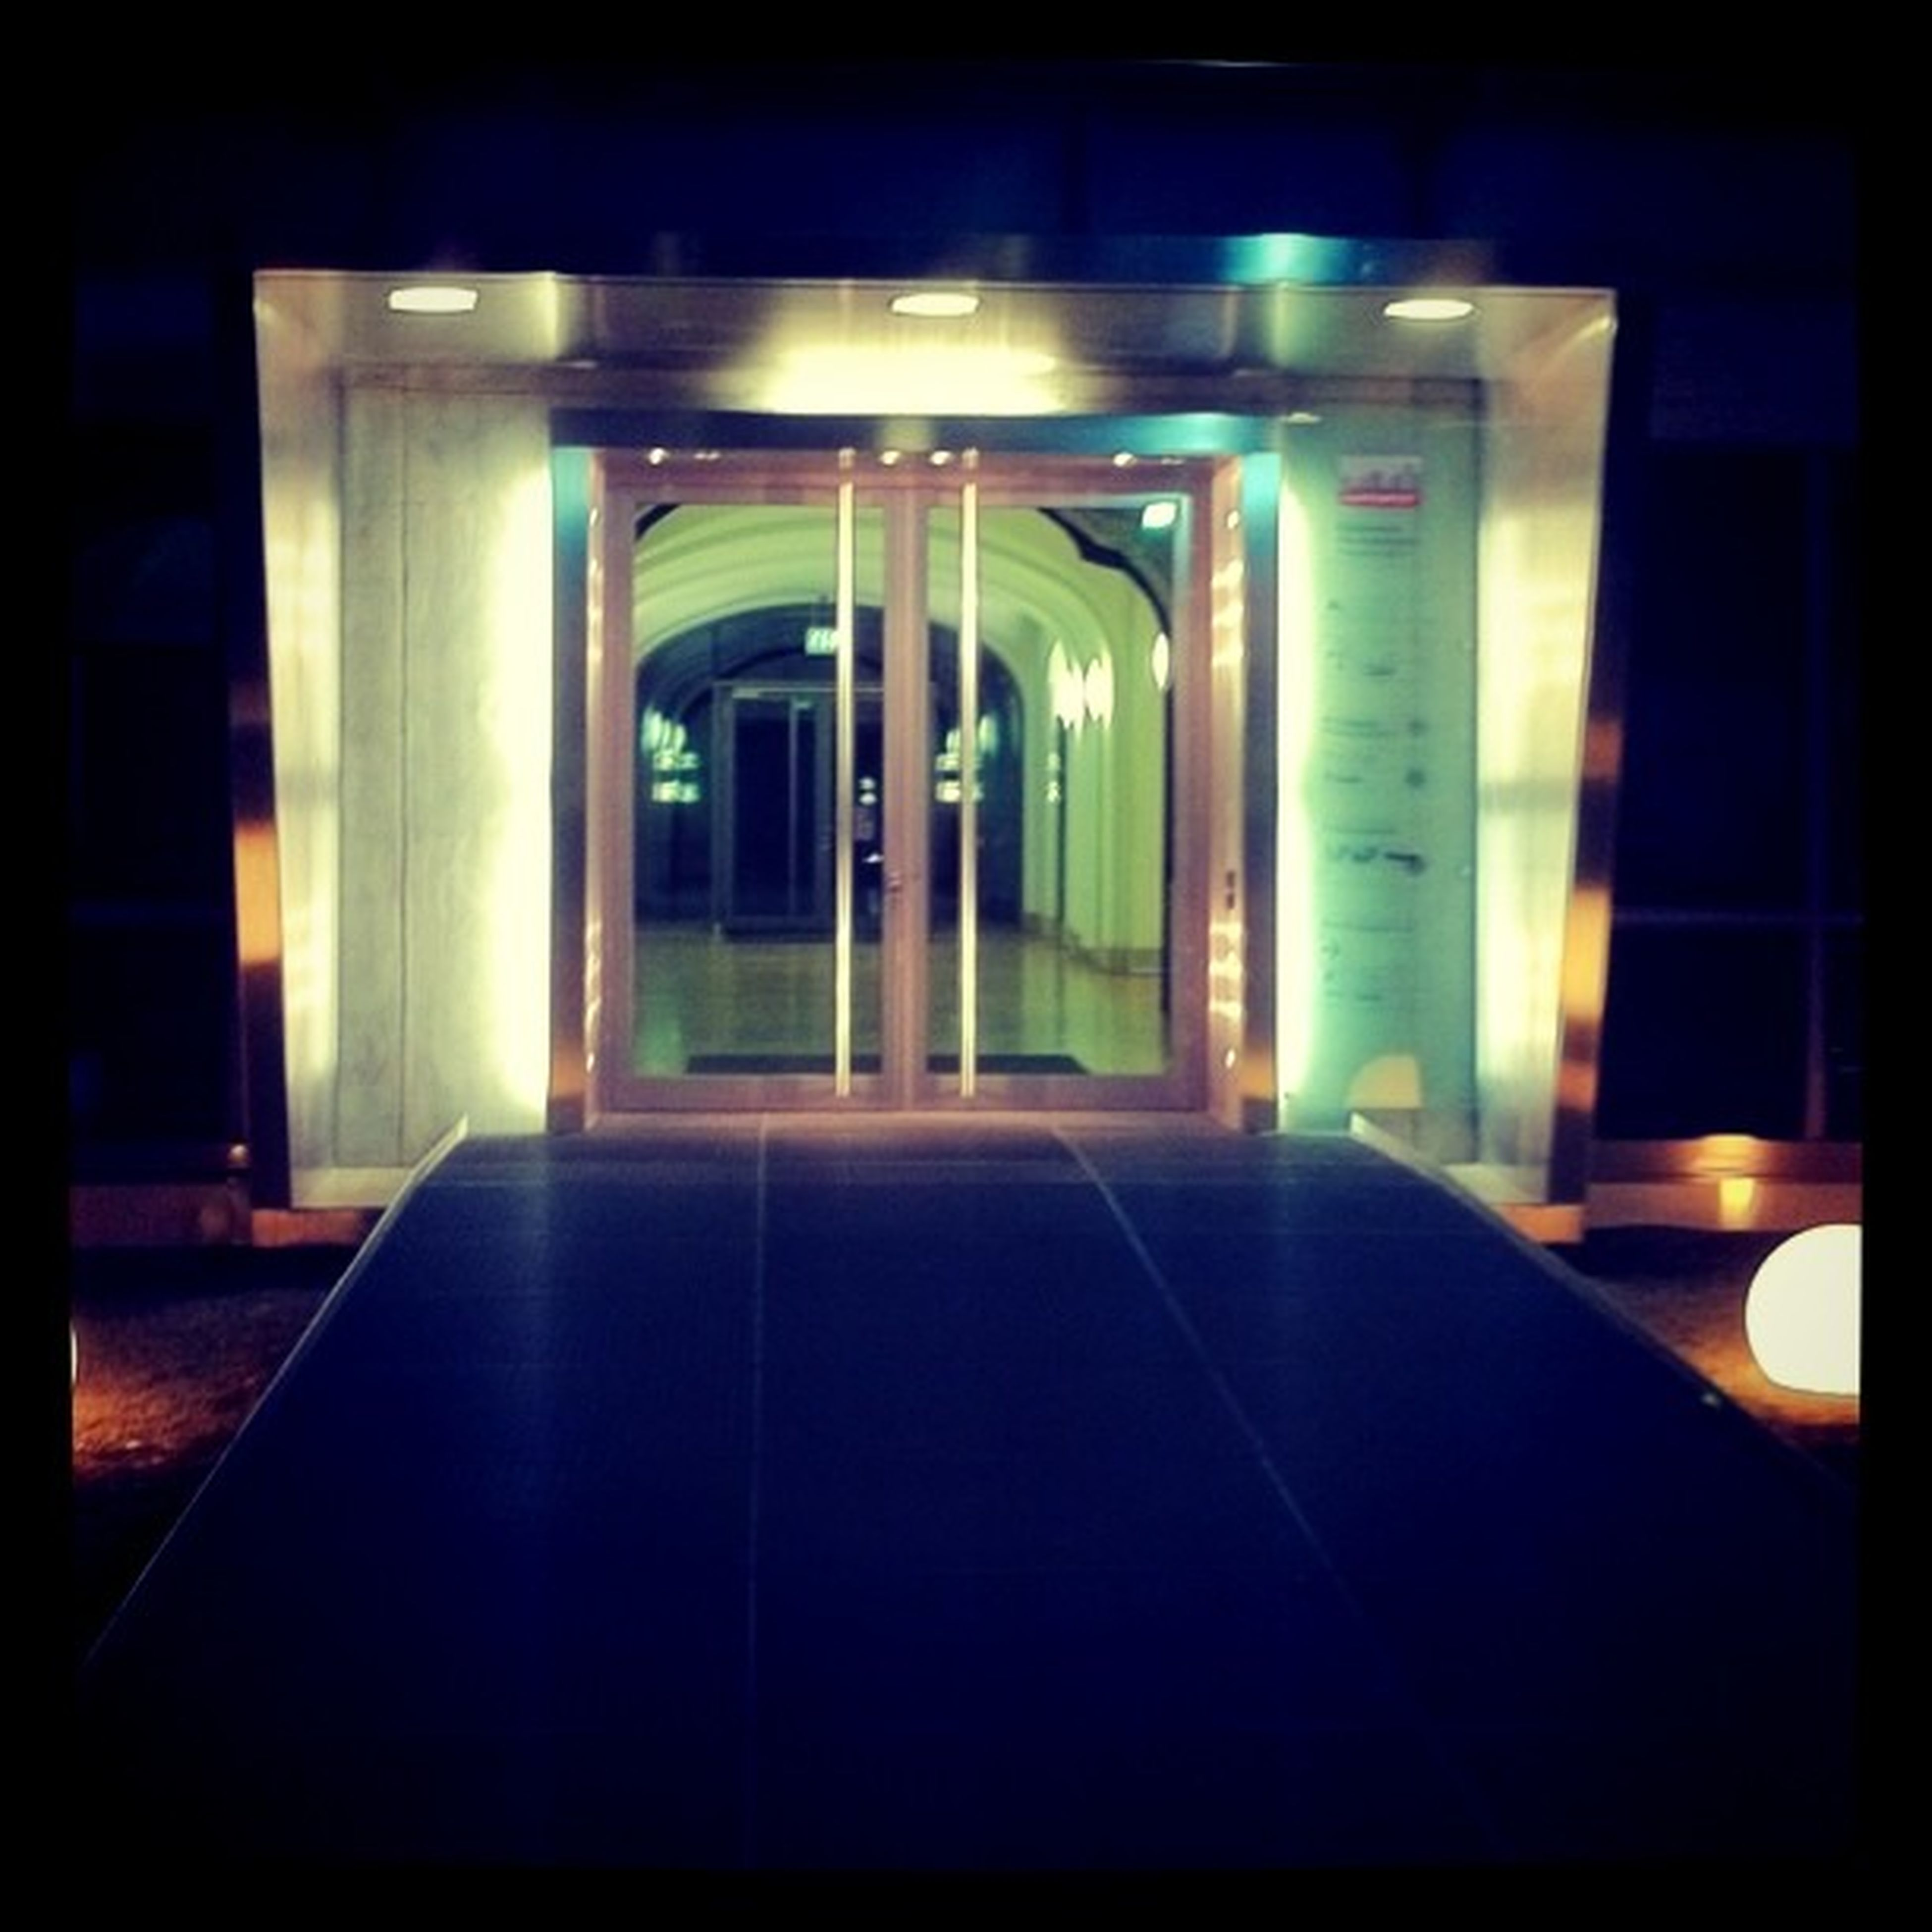 architecture, indoors, built structure, illuminated, empty, window, the way forward, absence, door, no people, building exterior, arch, building, architectural column, interior, dark, diminishing perspective, transportation, corridor, entrance